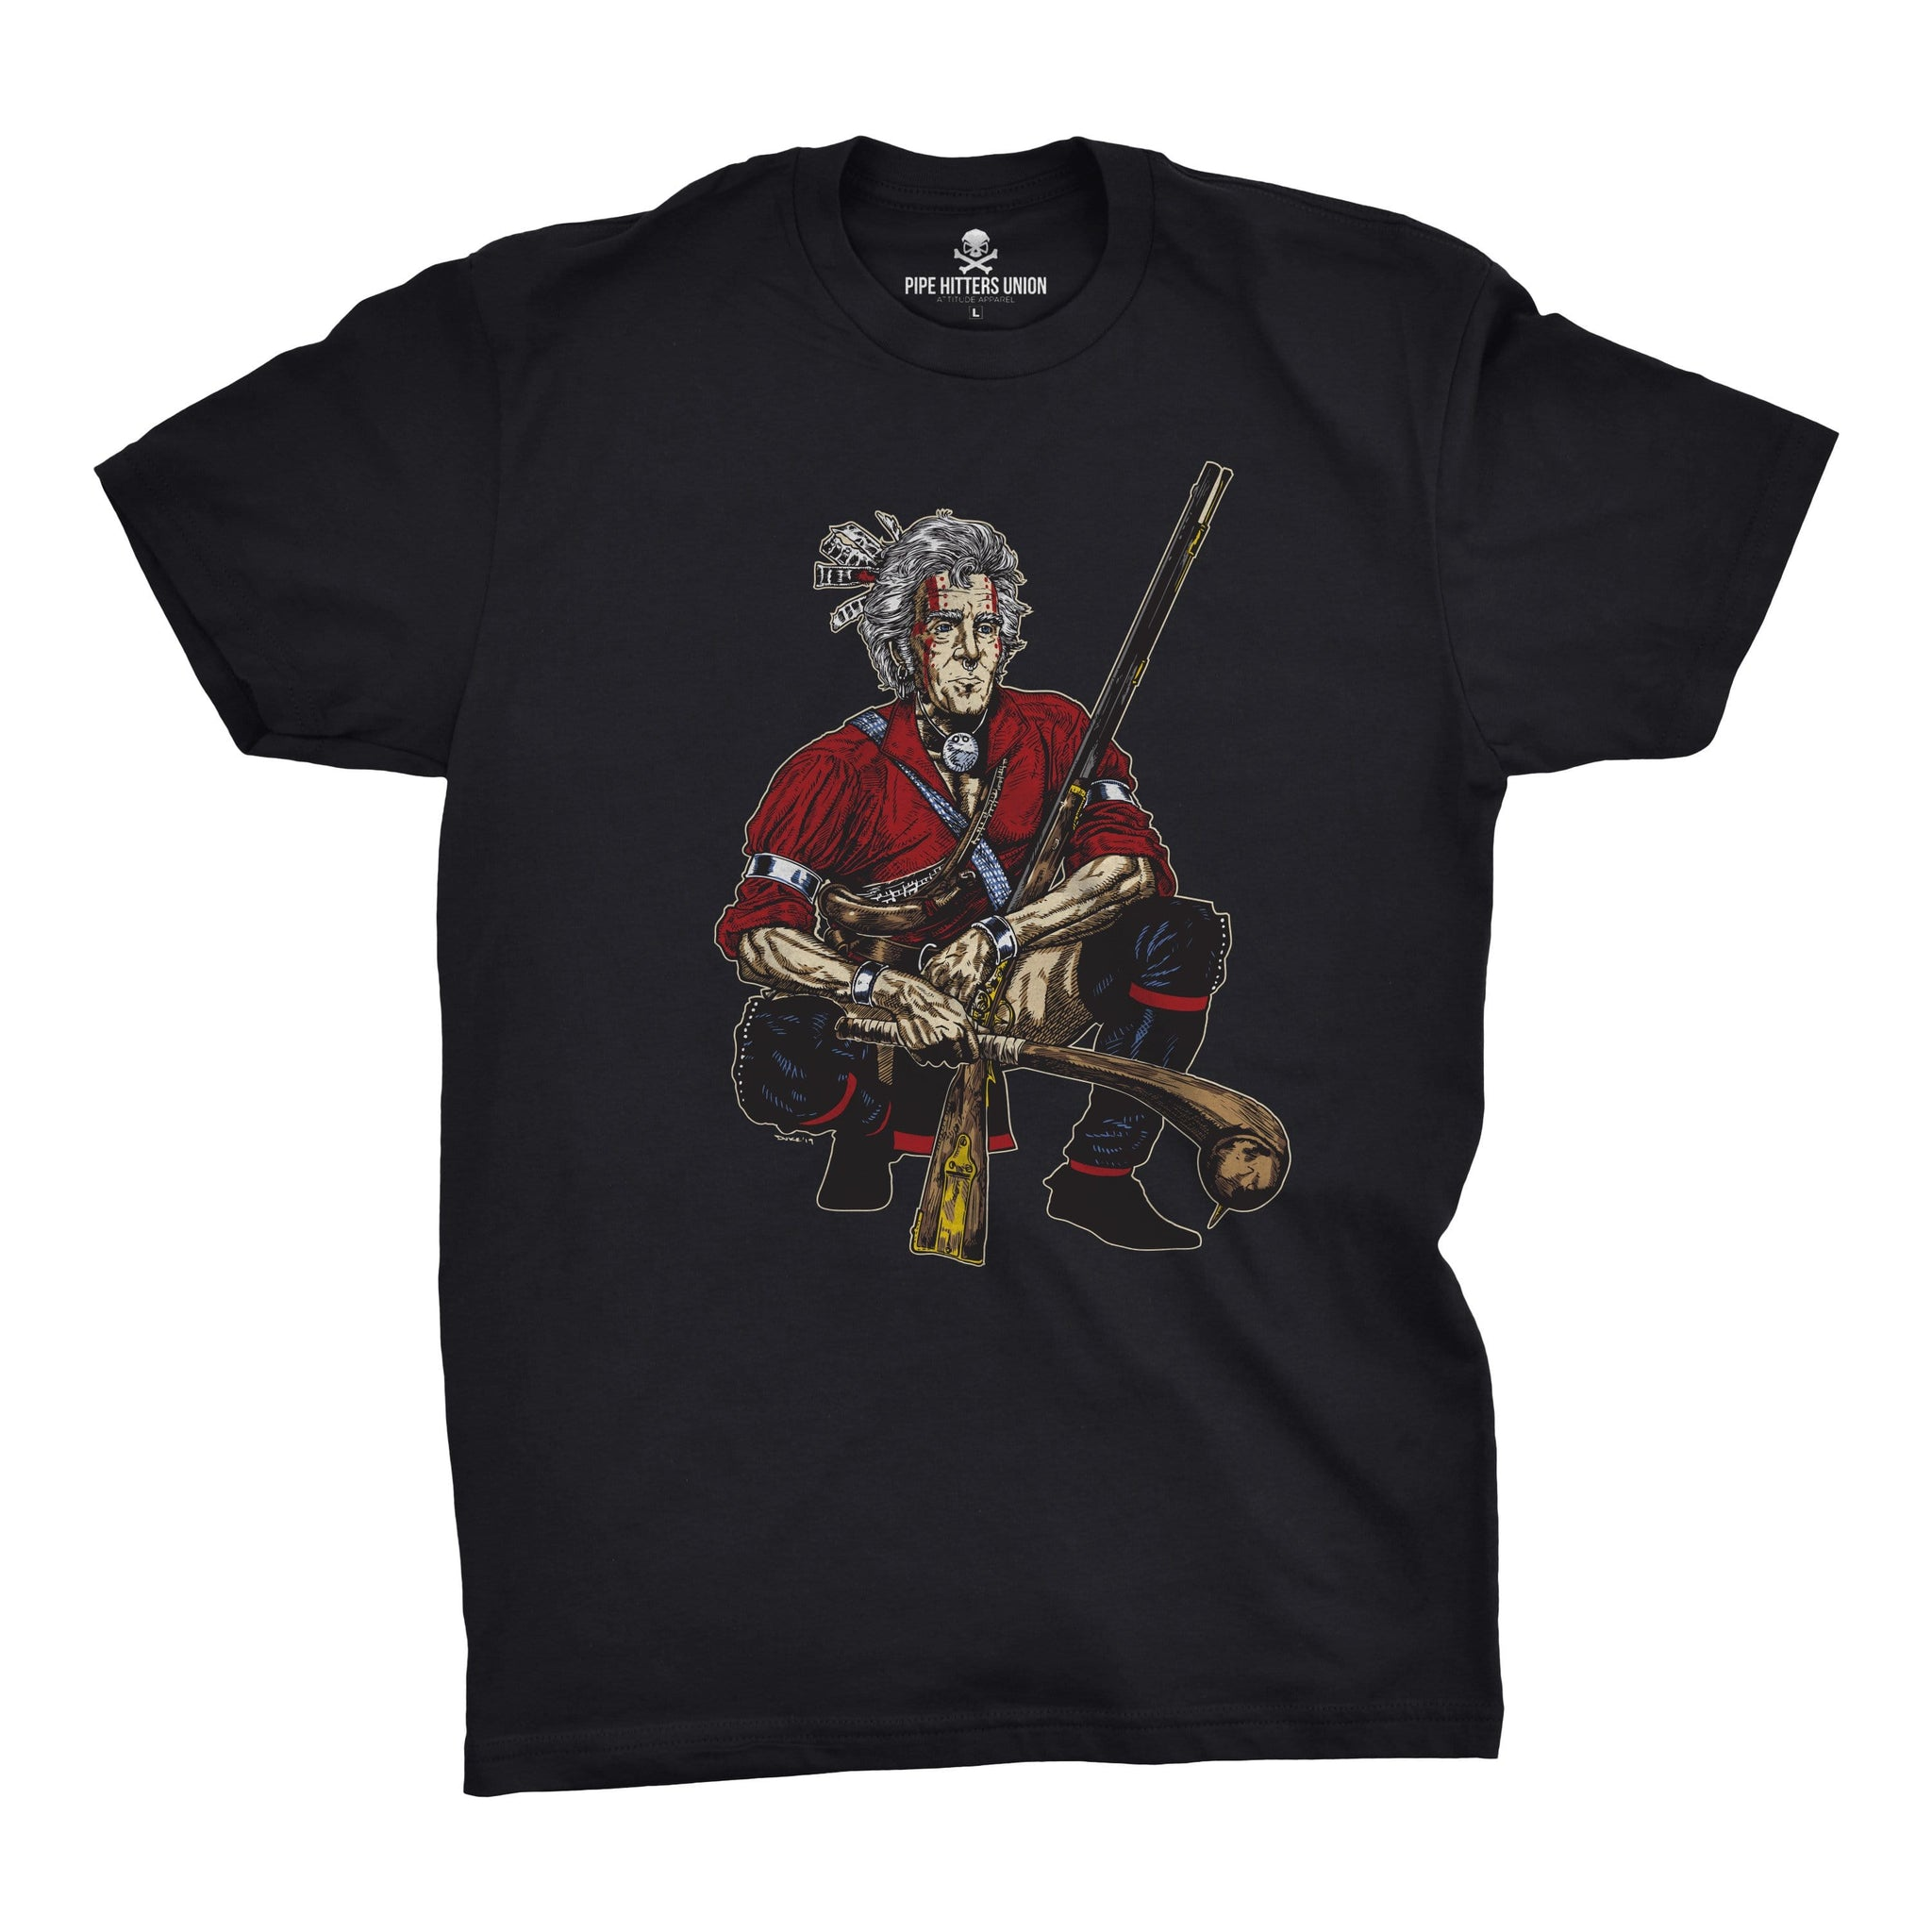 Original Pipe Hitter - Andrew Jackson - Black - T-Shirts - Pipe Hitters Union